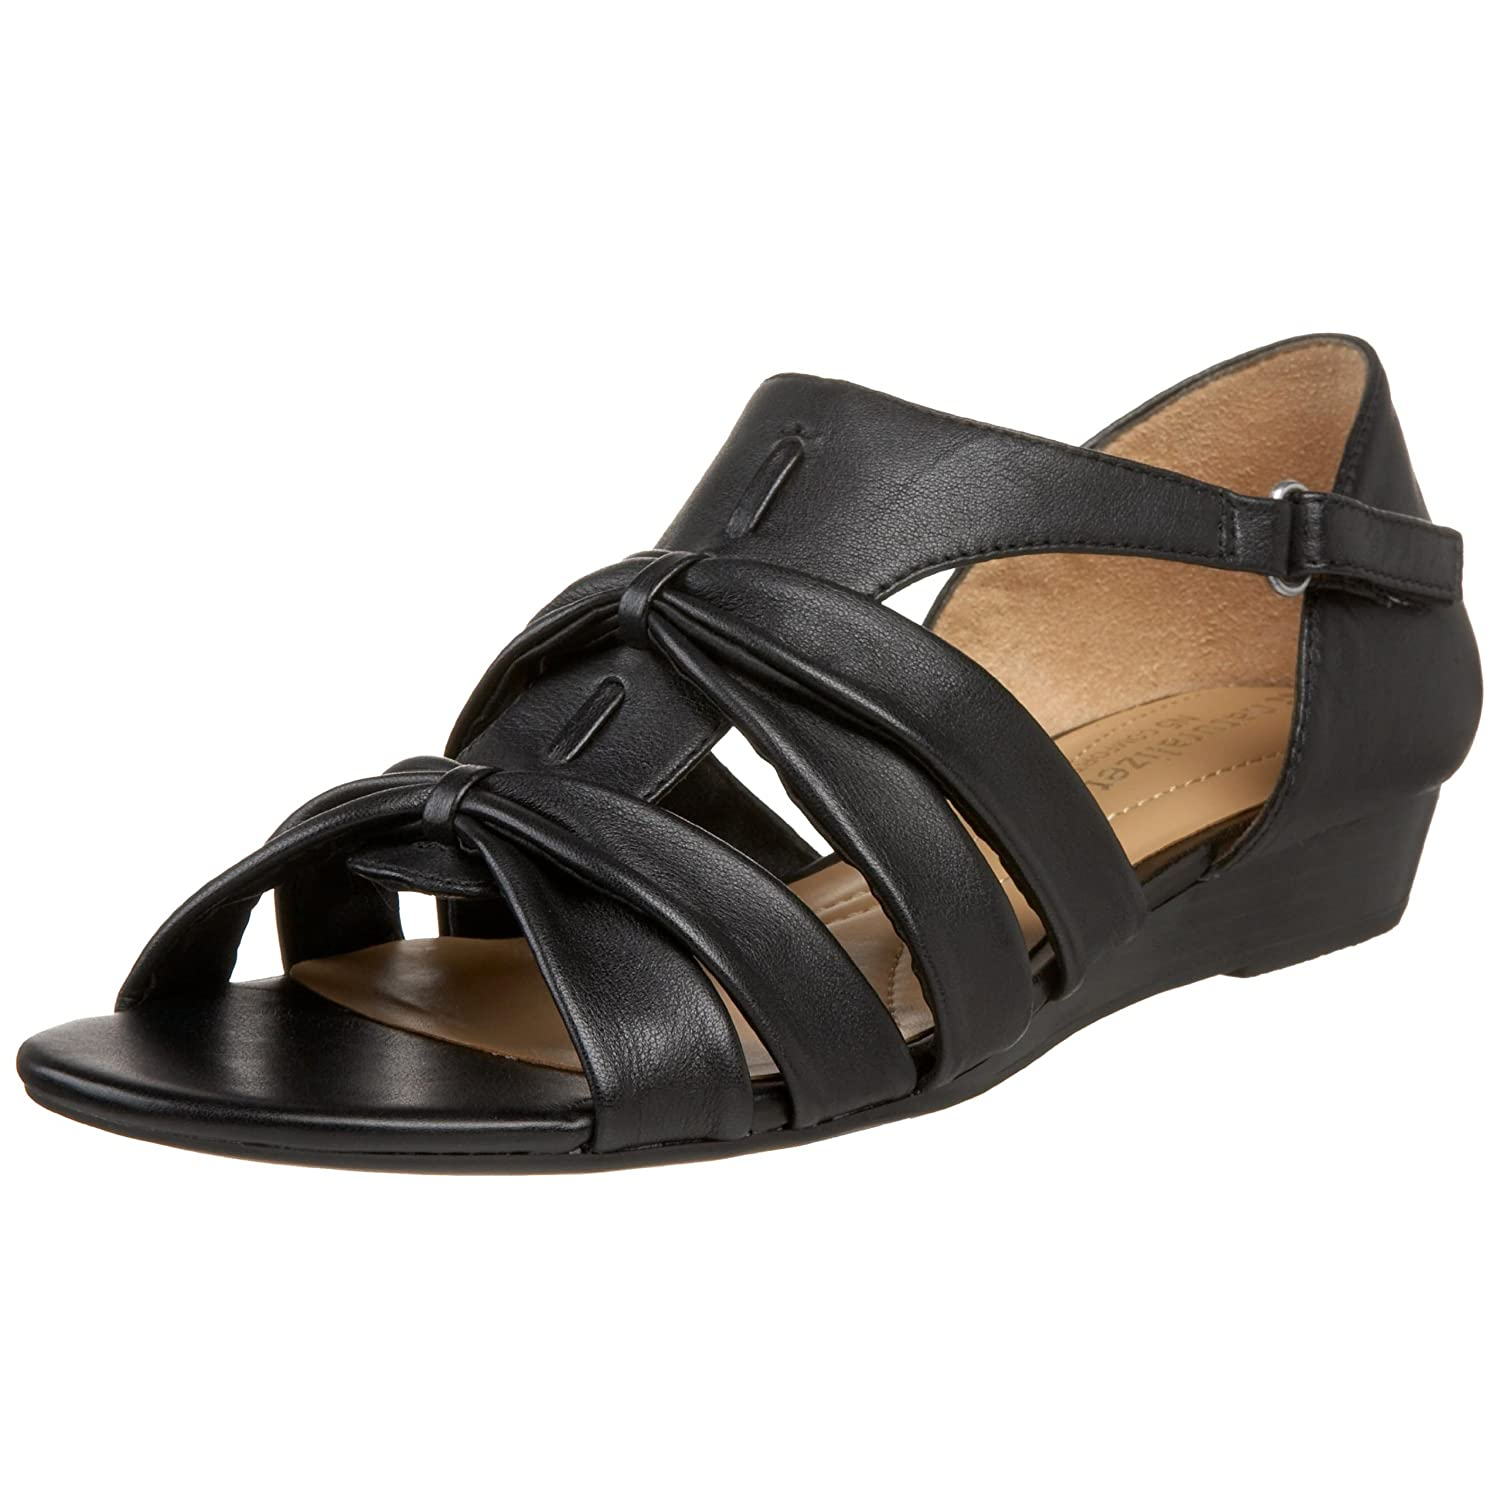 Naturalizer Women's Joslin Strappy Sandal B002GU7SZC 5 B(M) US|Black